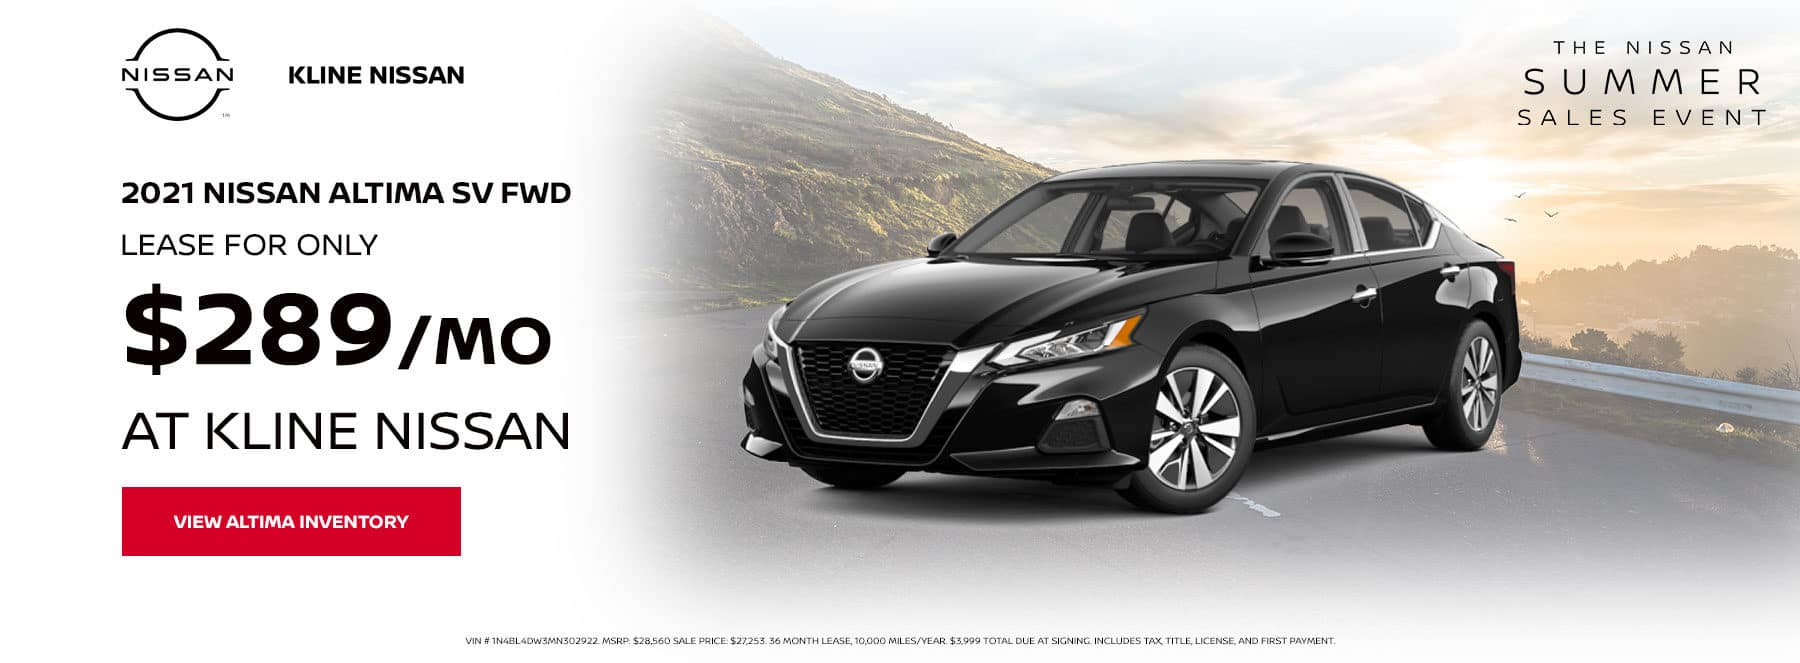 Lease a 2021 Nissan Altima SV AWD, for only $289/mo at Kline Nissan